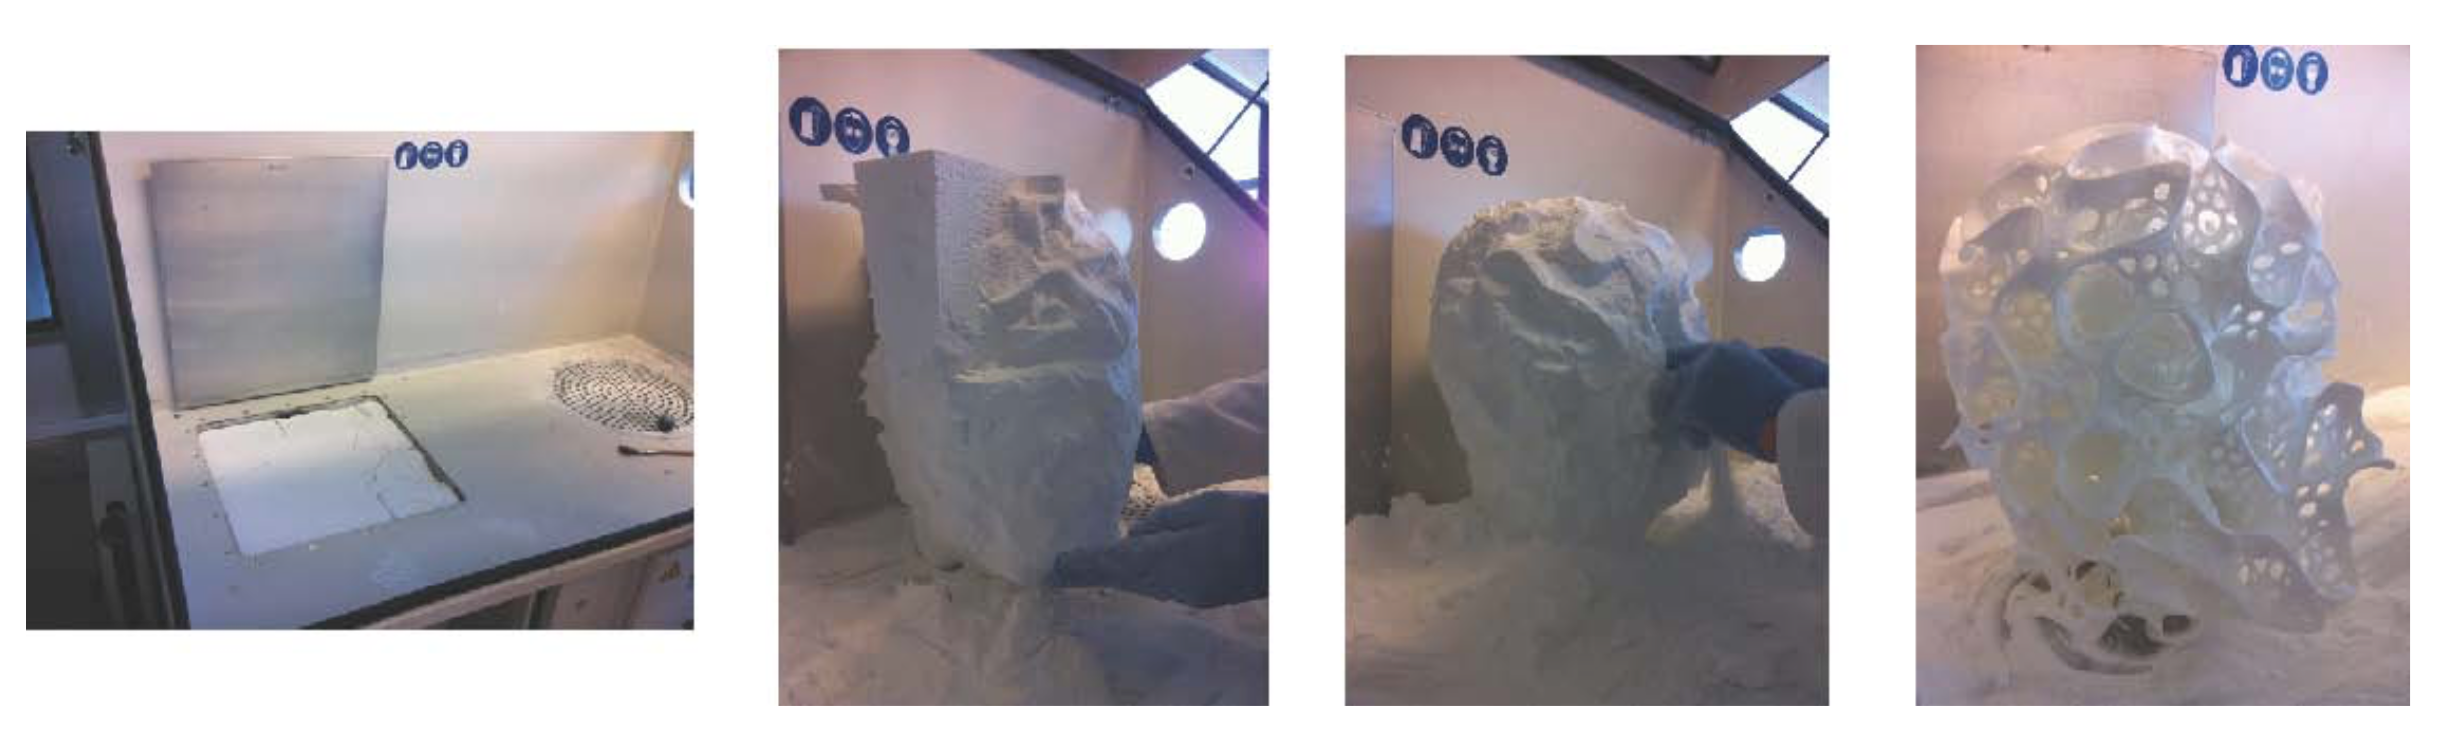 Stages of the 3D Printing Process. Stripping Away of Extraneous Nylon Powder to Reveal the Printed Nylon Head